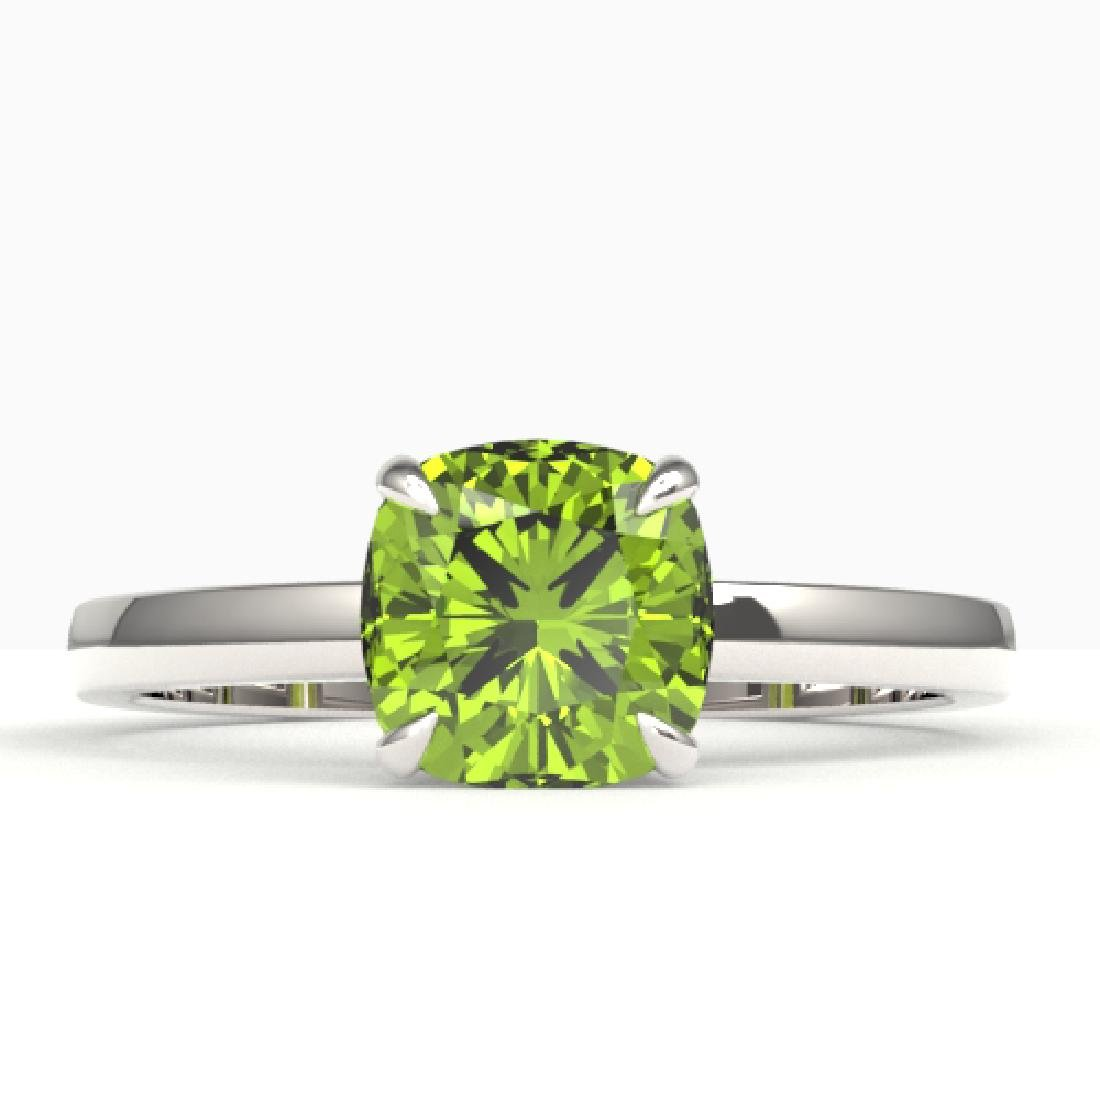 2 CTW Cushion Cut Peridot Solitaire Engagement Ring 18K